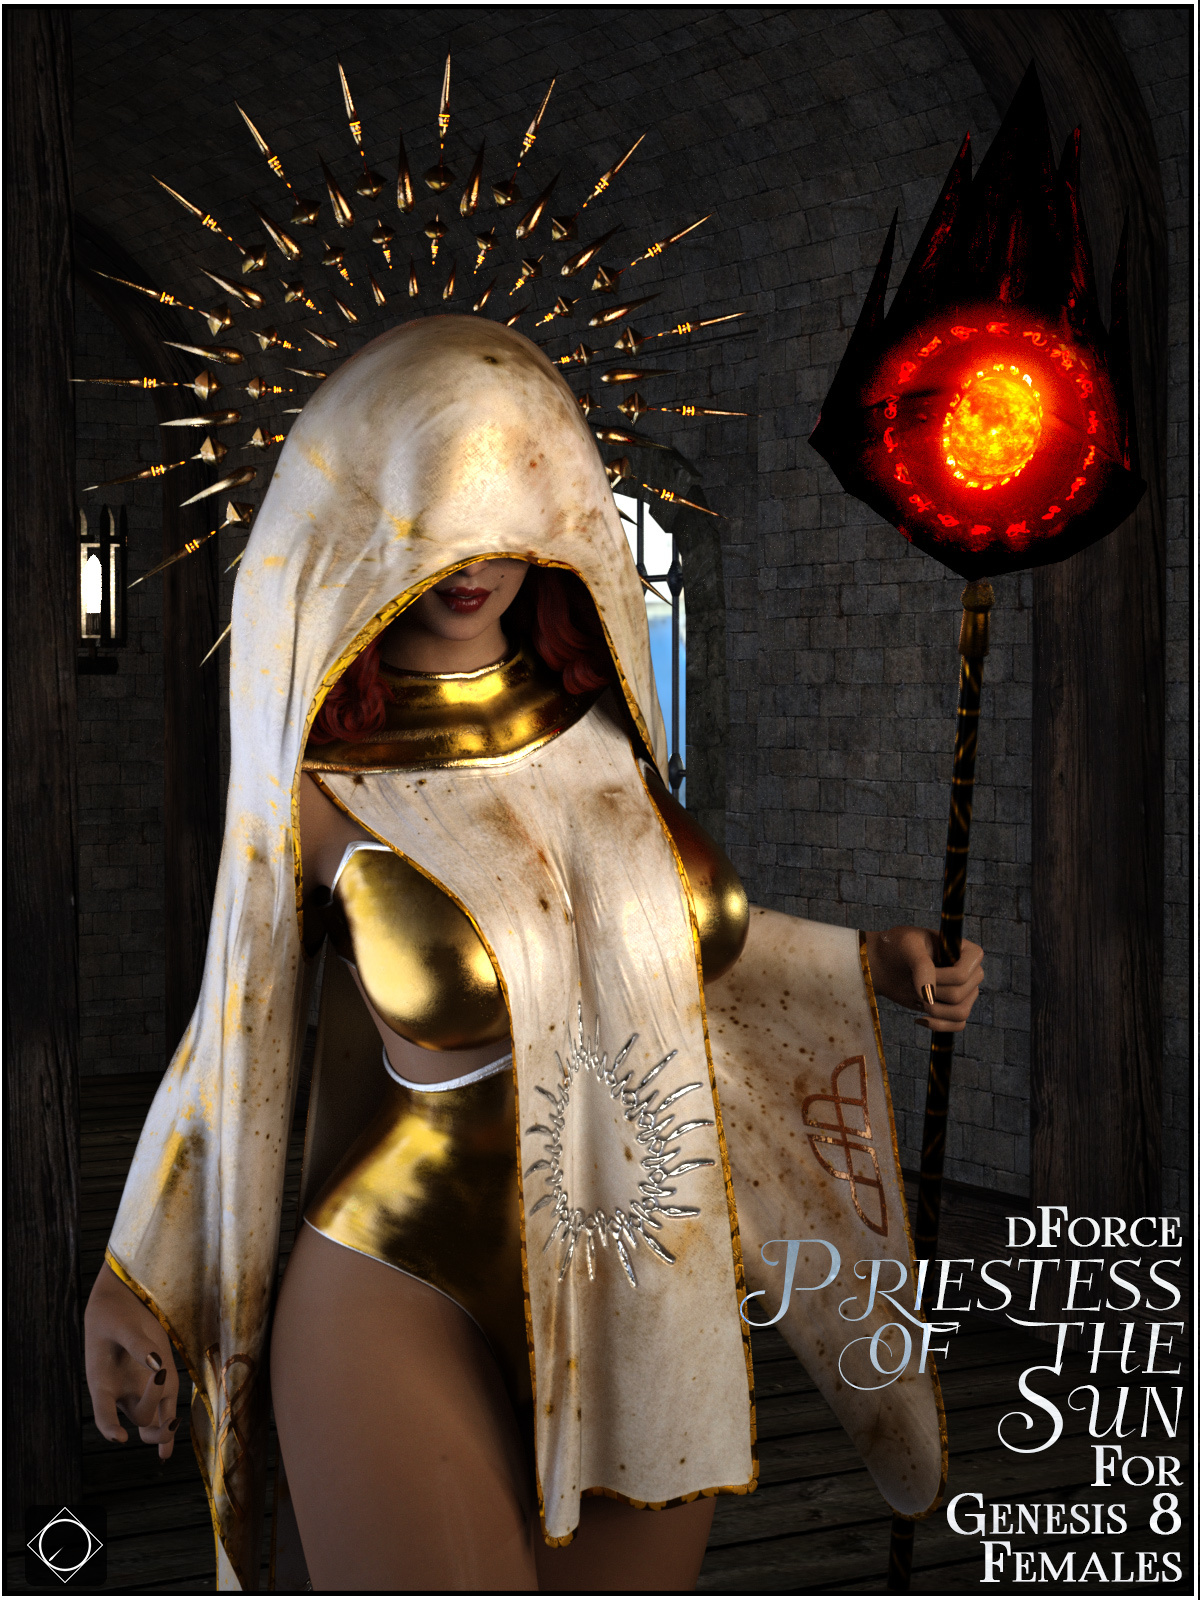 dforce Priestess of the Sun for Genesis 8 Females by SWTrium